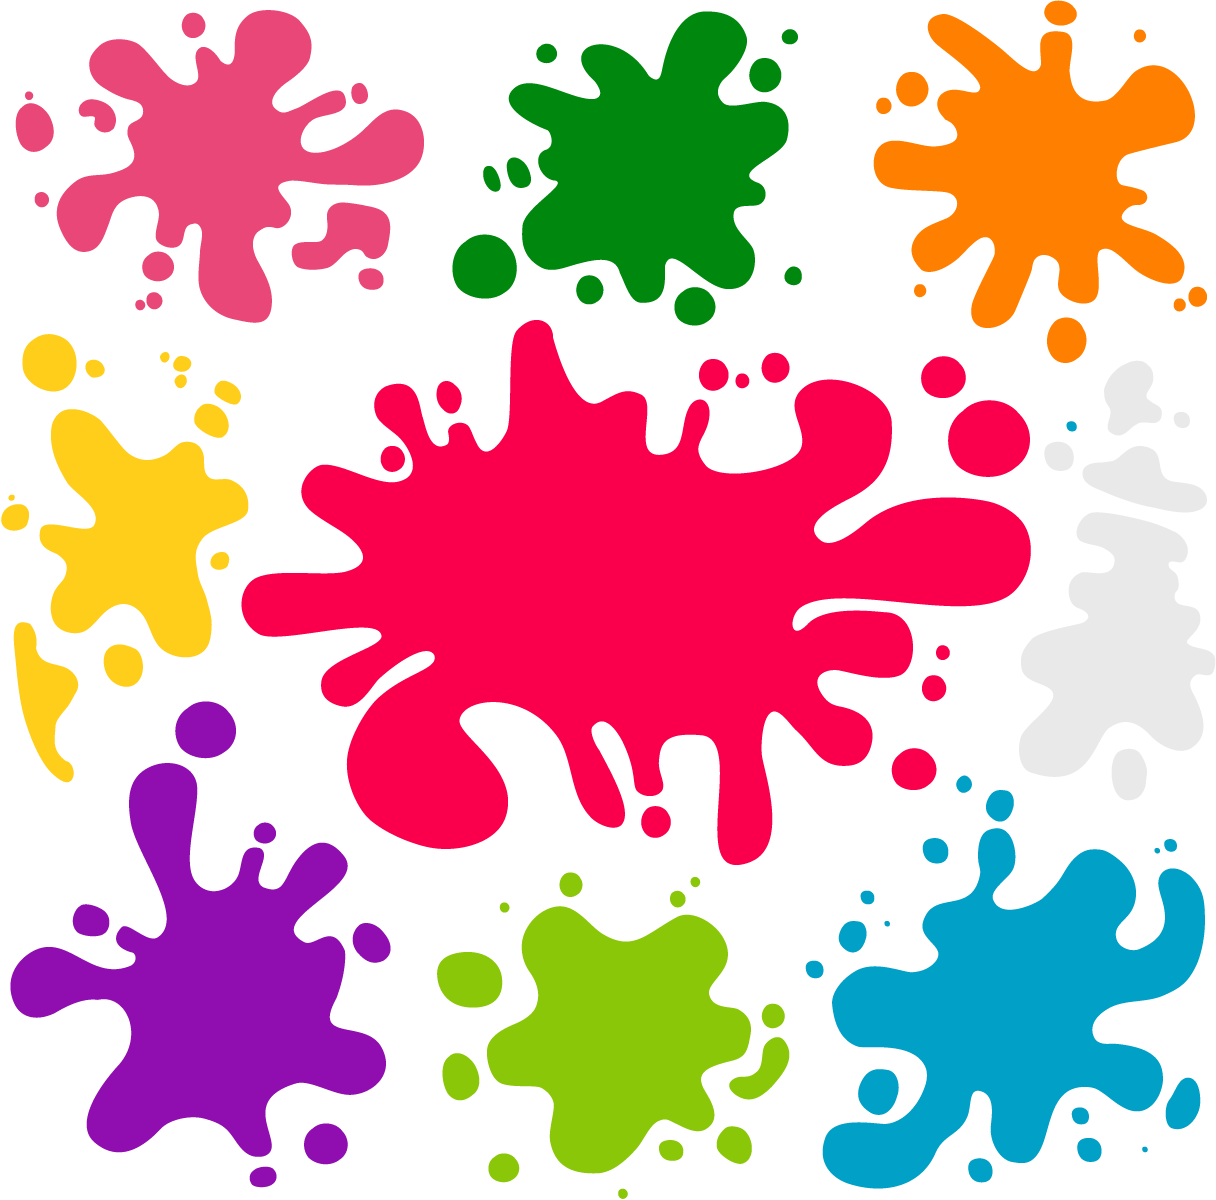 Photos Icon Stain Download Number 7514 Daily Updated Free Icons And Png Images For Your Projects All Images Use To Free For Slime The Incredibles Painting